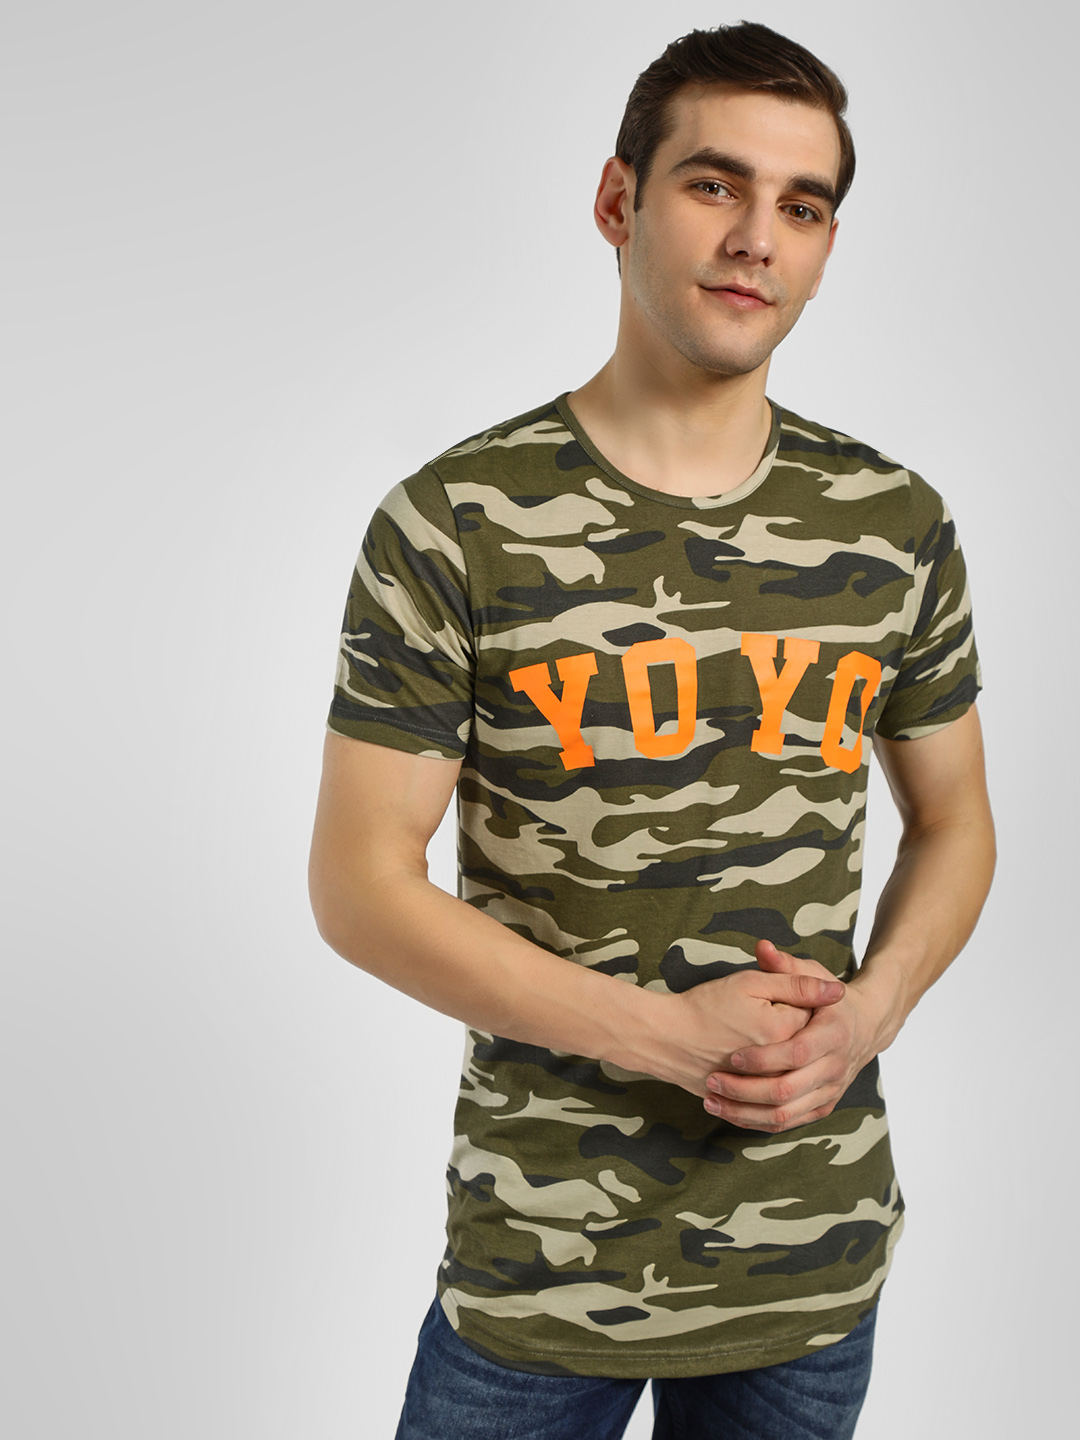 Adamo London Multi Yo Yo Camo Print T-Shirt 1